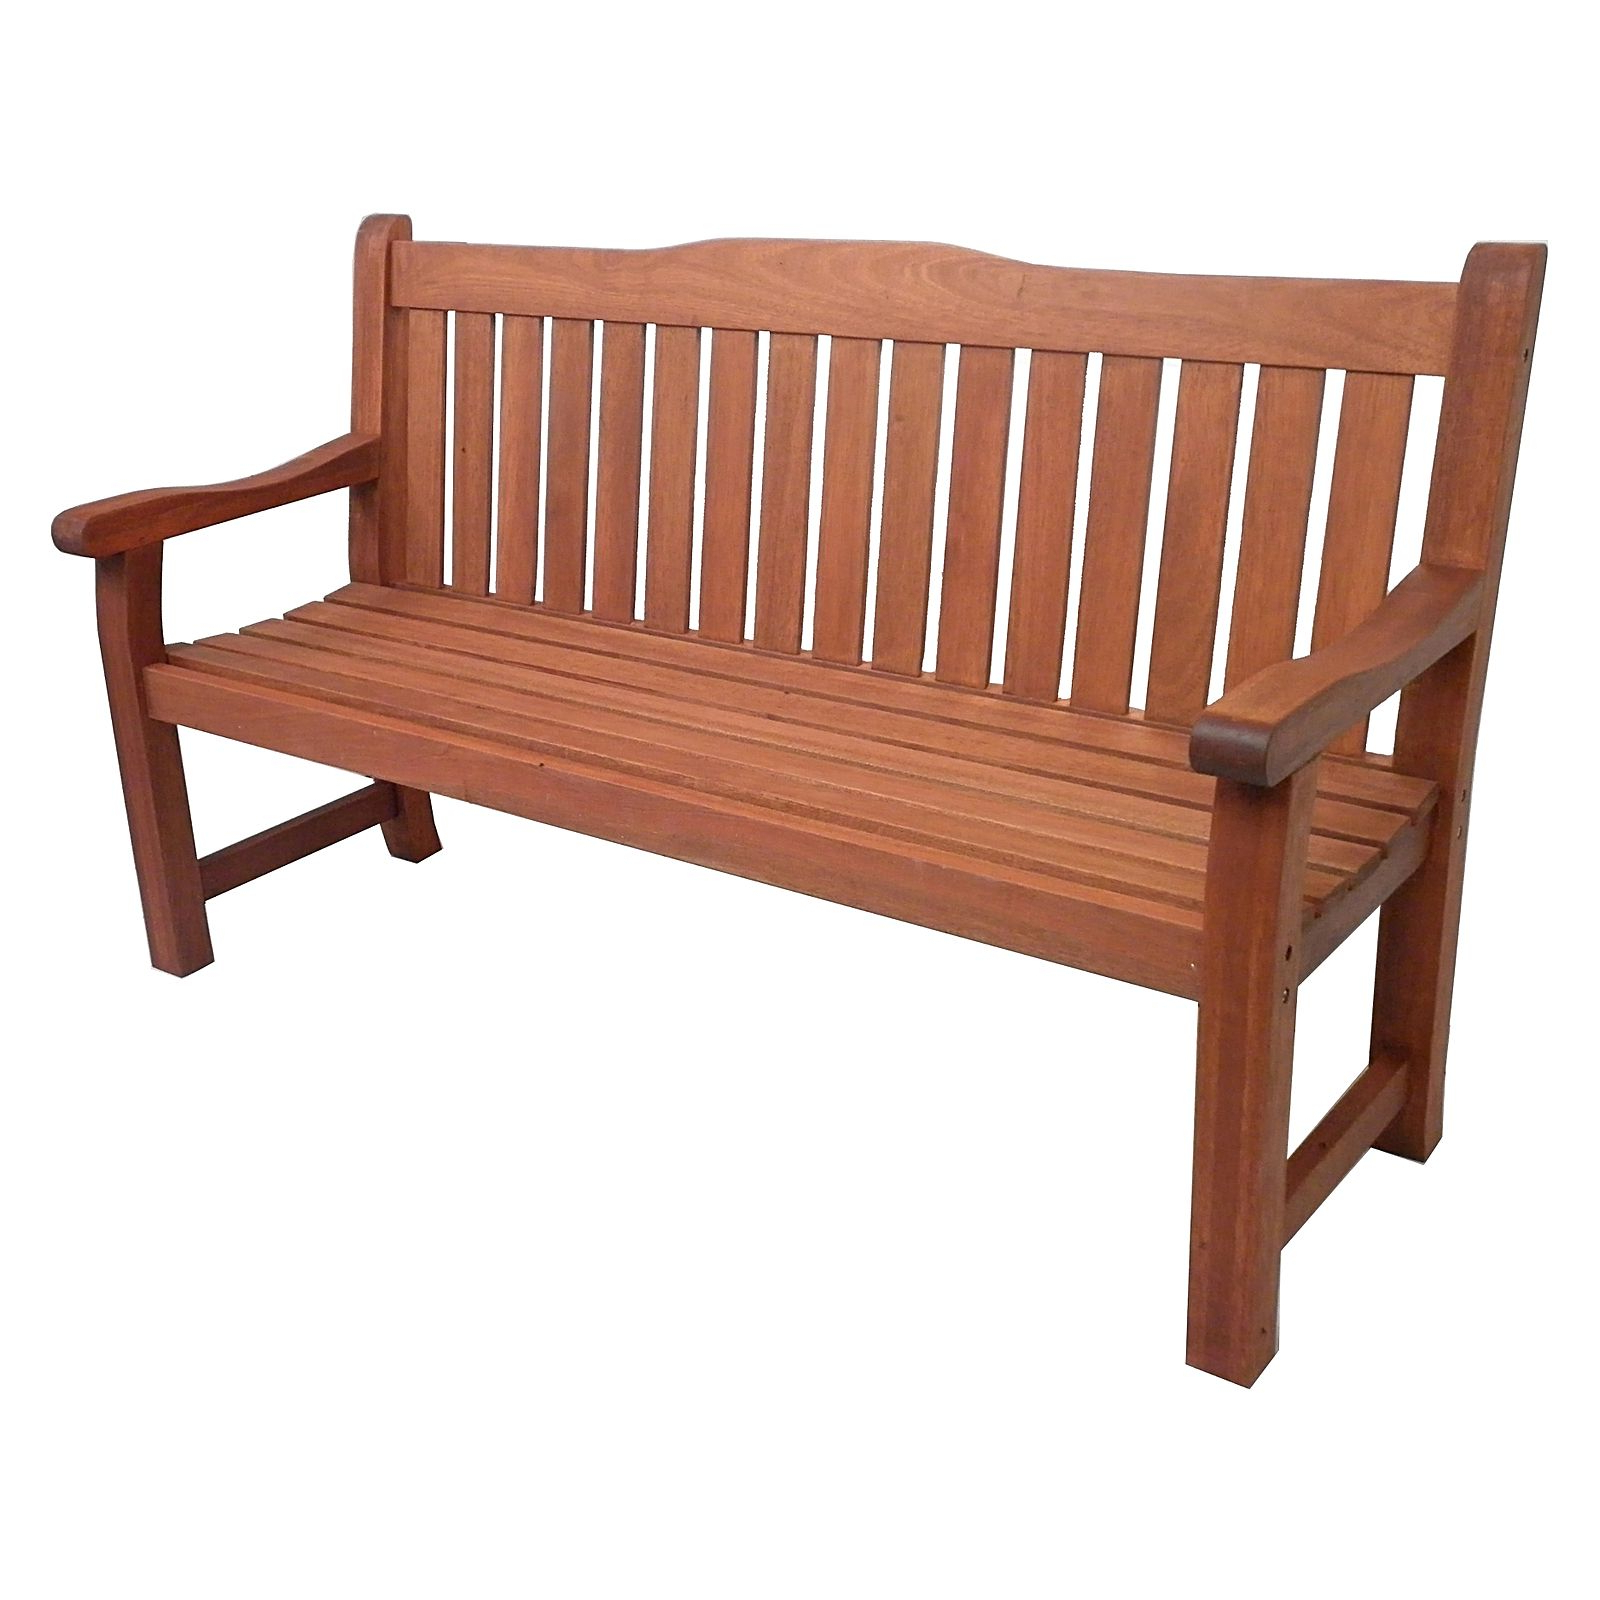 Widely Used Manchester Solid Wood Garden Benches Inside Hamburg 3 Seater Outdoor Bench (View 22 of 30)